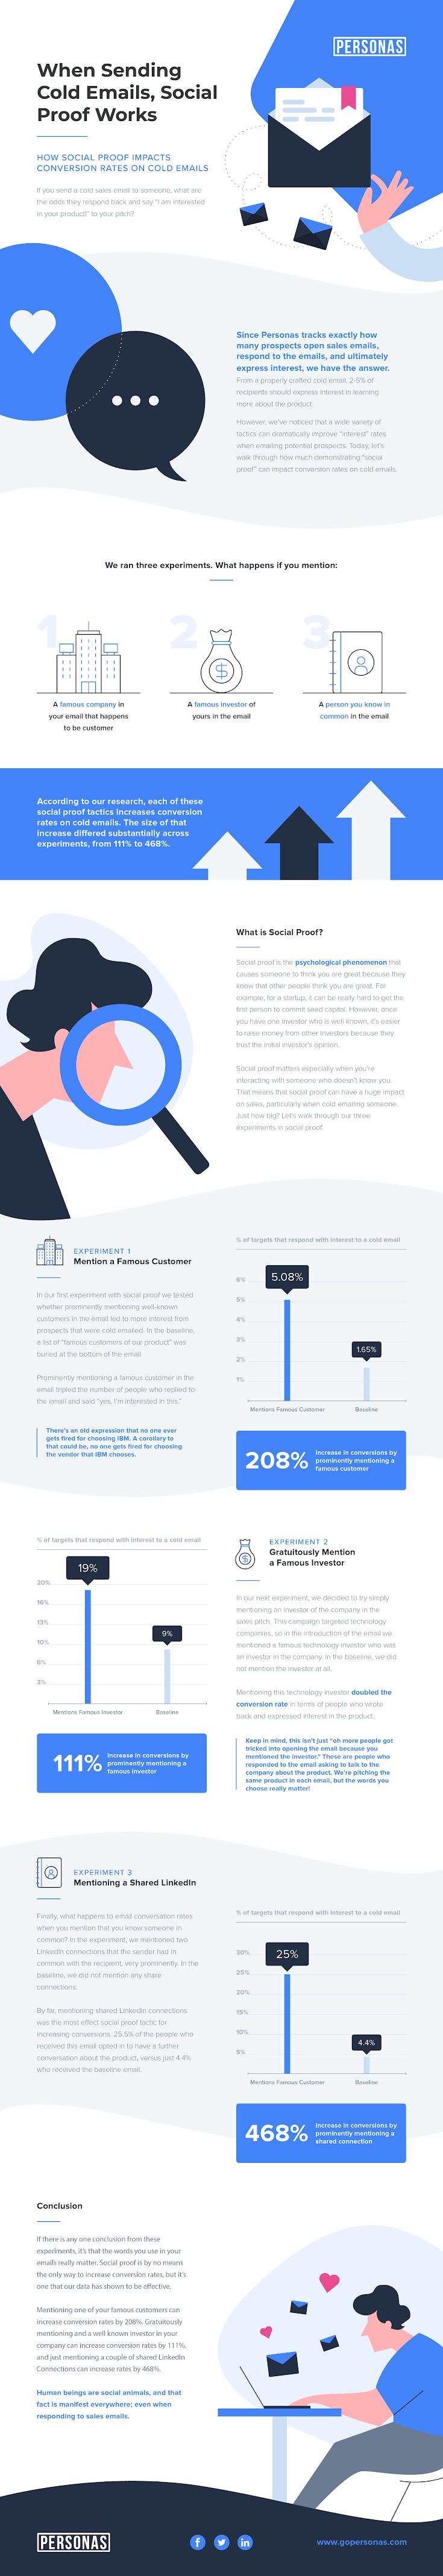 Infographic: Improving Cold Outbound Sales Email with Social Proof